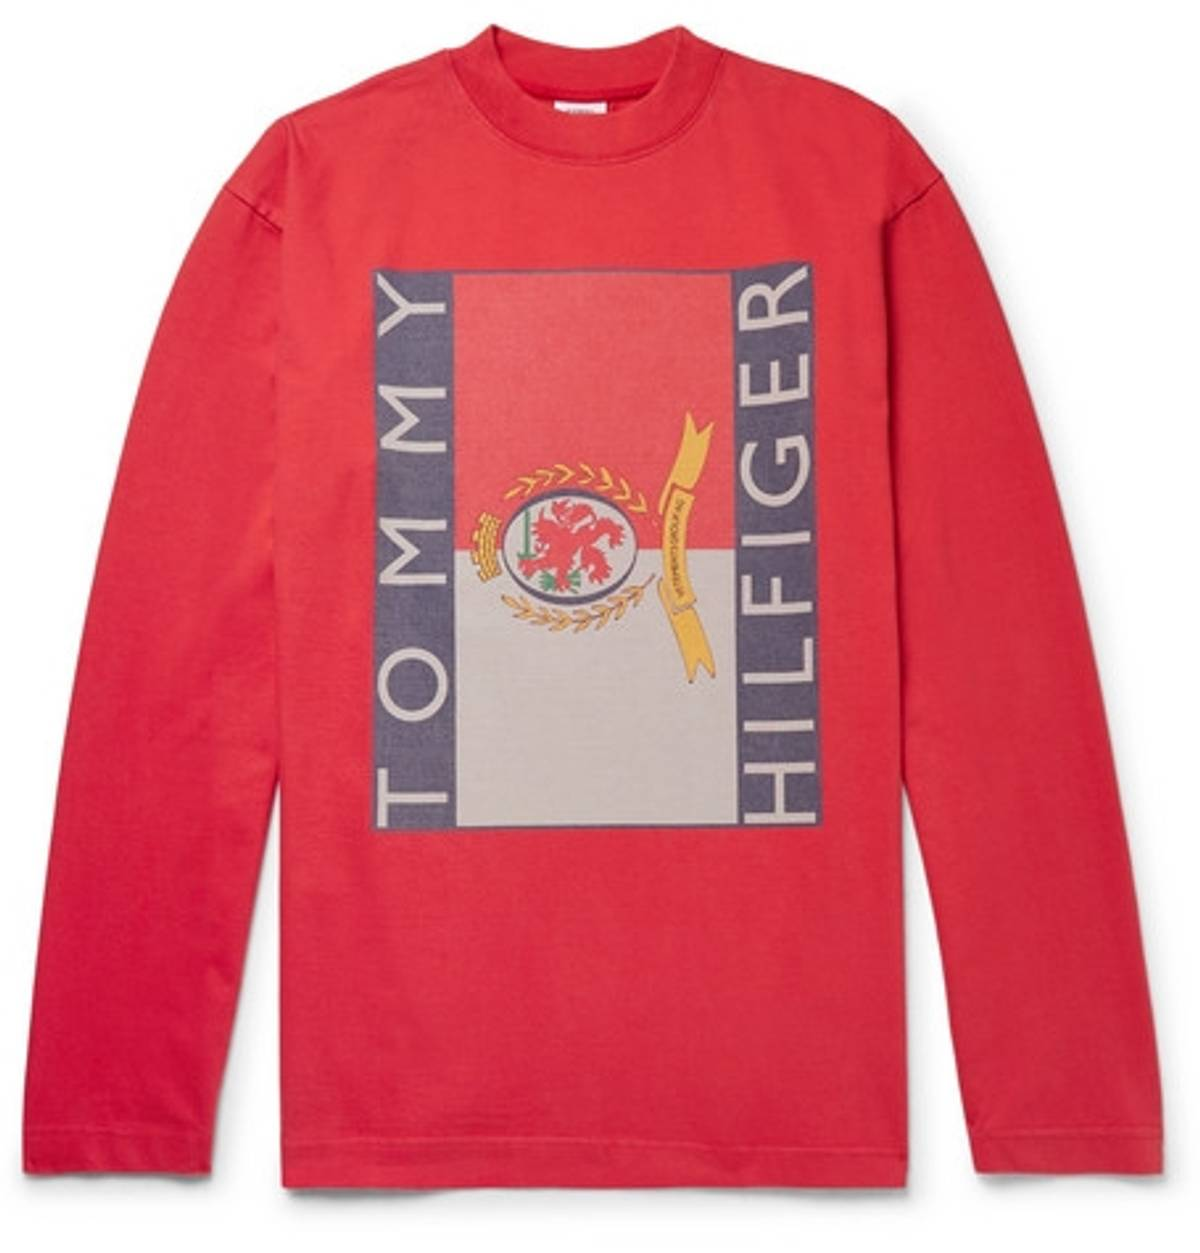 81dff54f7 Tommy Hilfiger **steal** Vetements X Tommy Hilfiger | Grailed